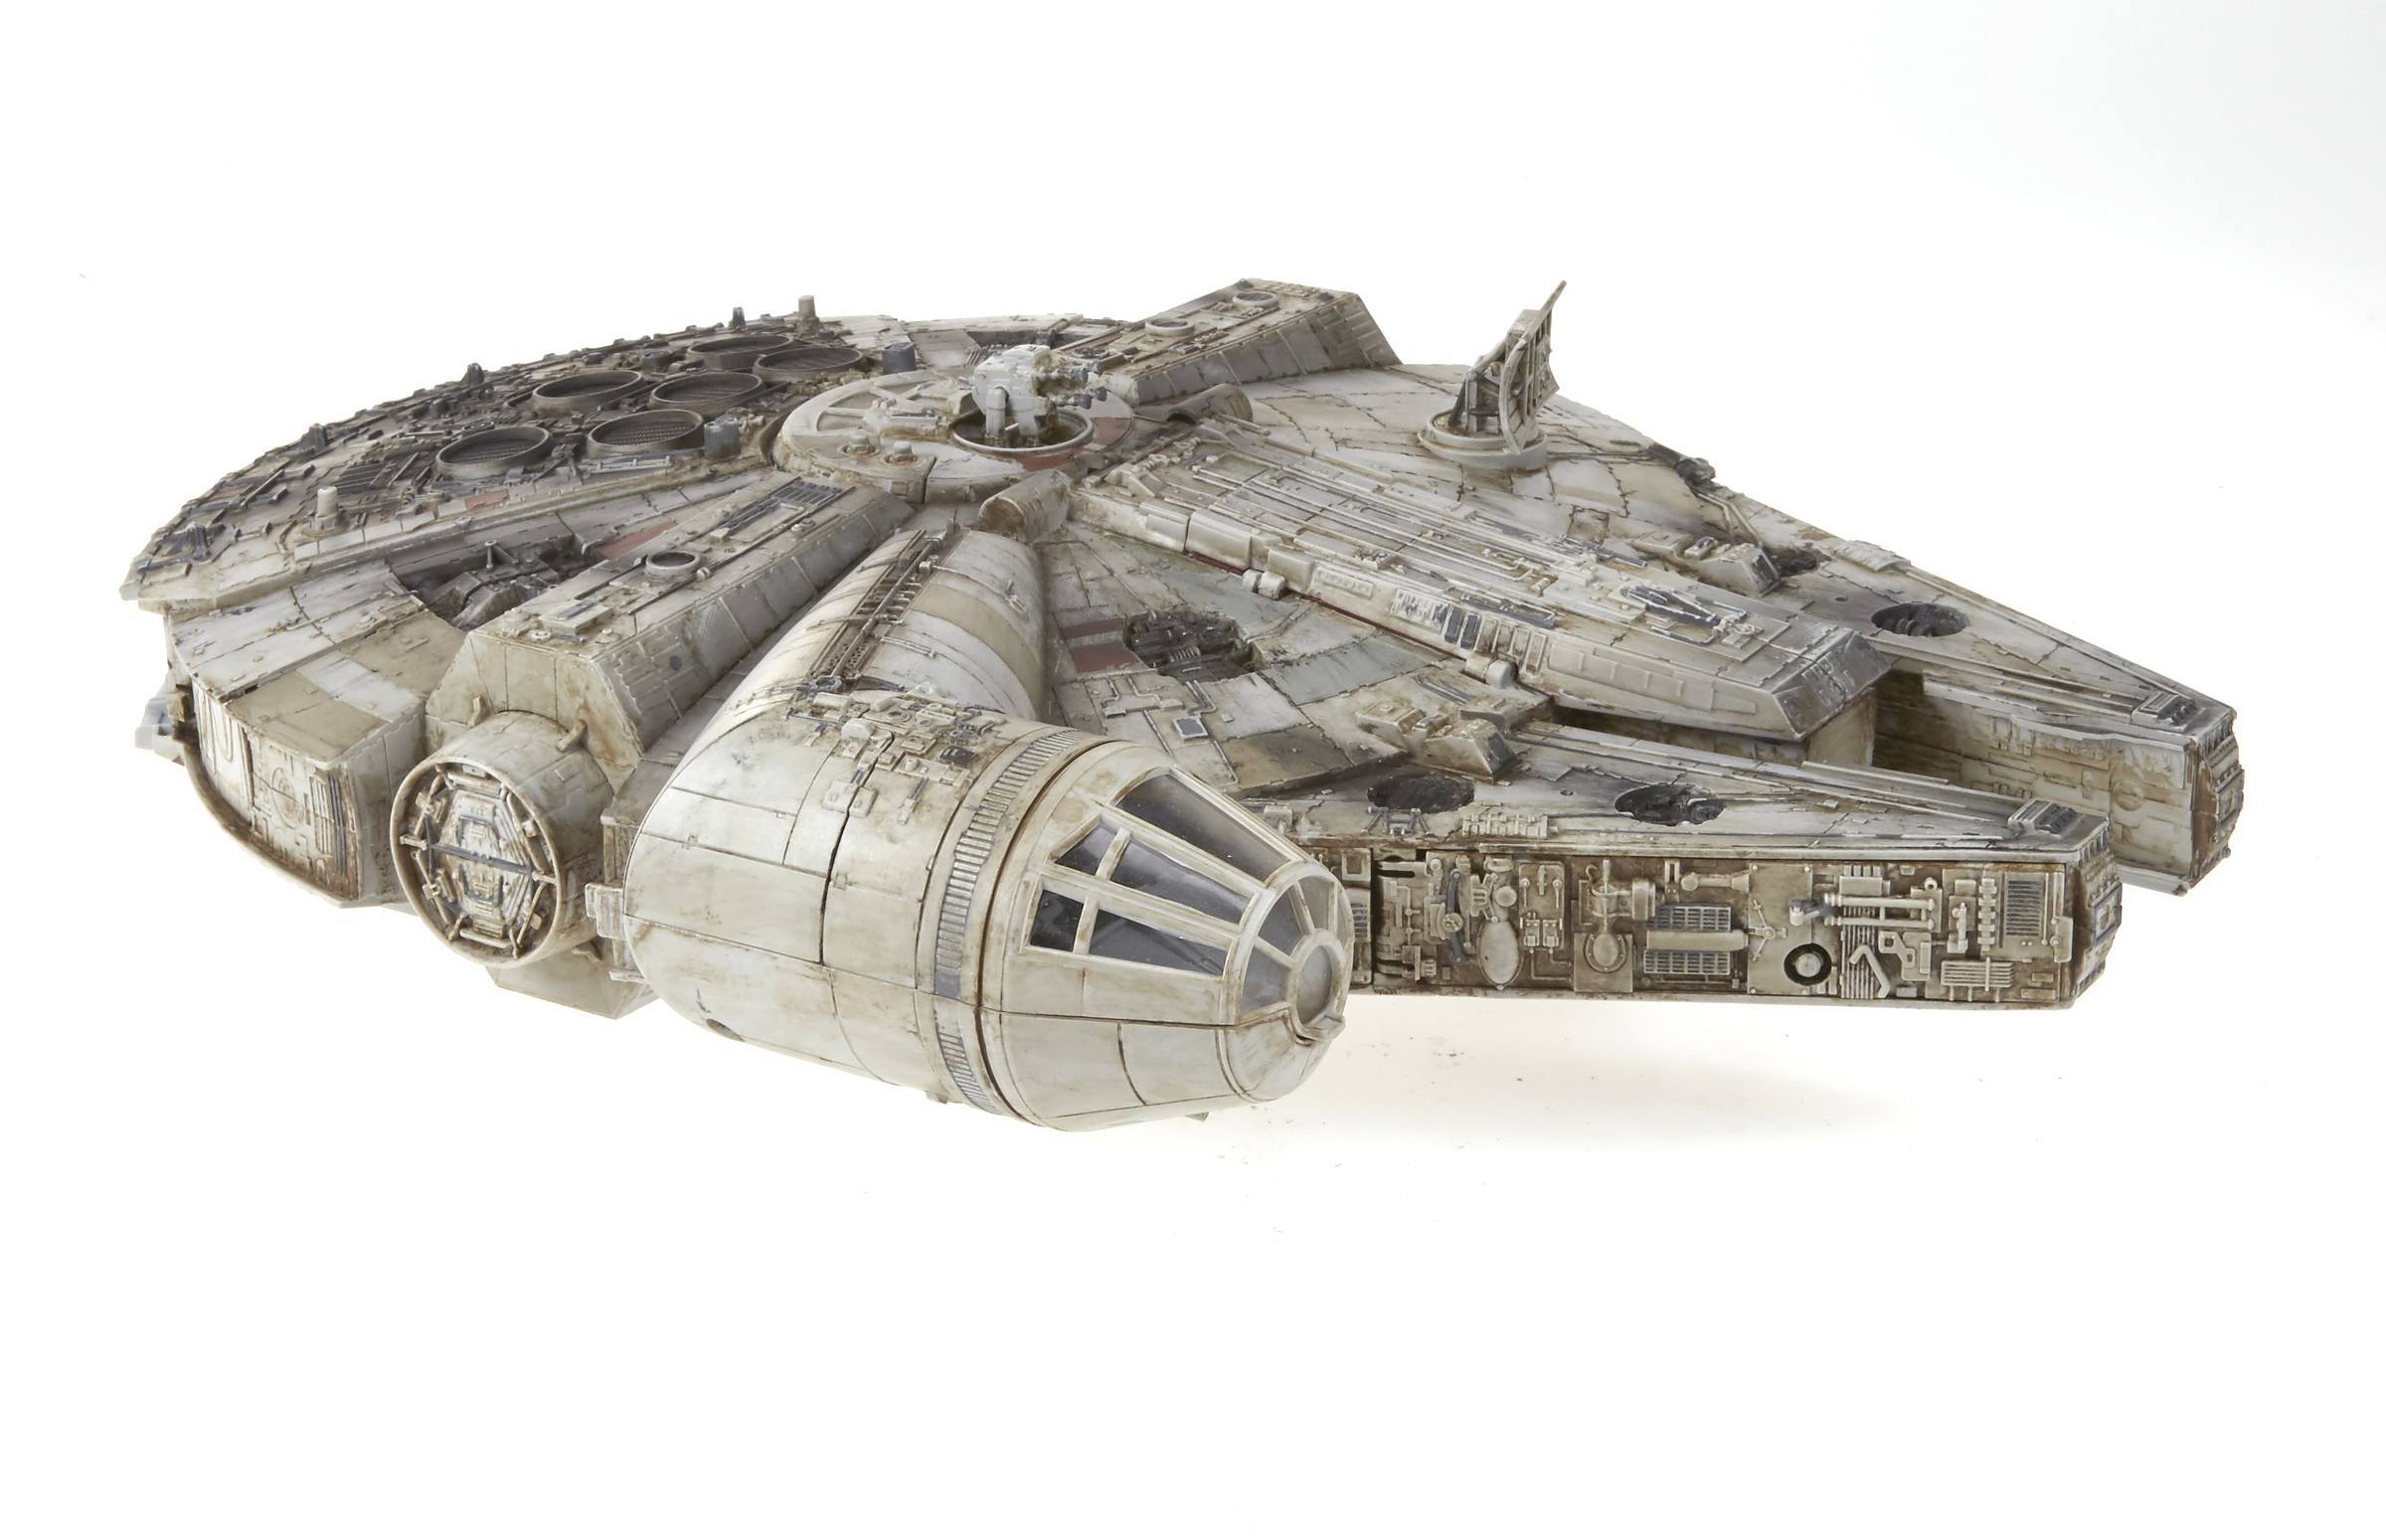 This Millennium Falcon Toy Is Straight Out of Star Wars After a New Paint Job